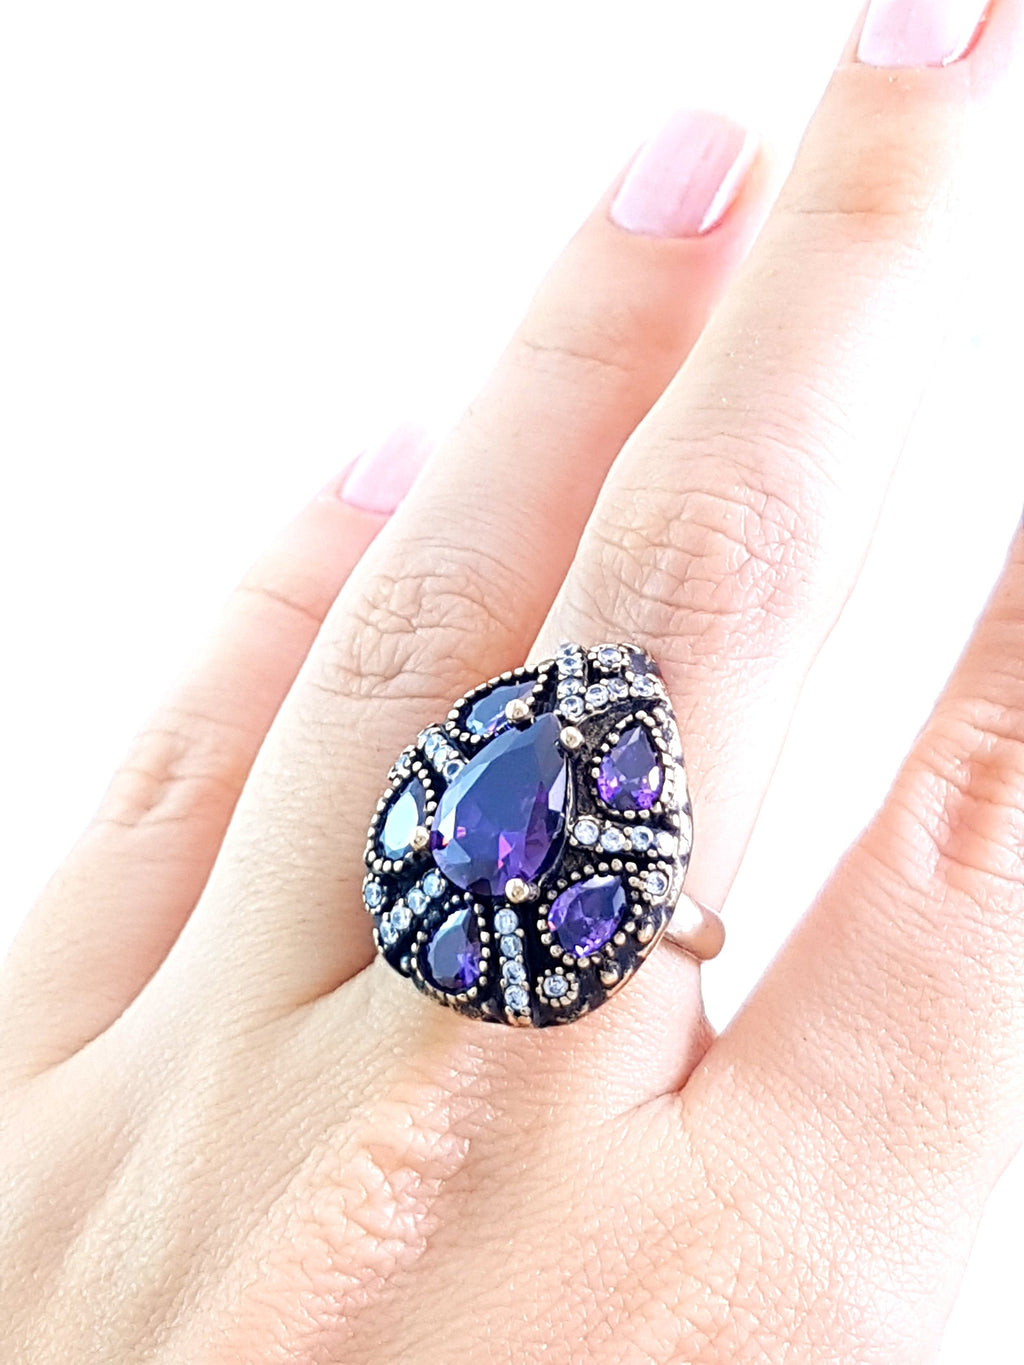 Amethyst Ladies Ring Antique Turkish Wholesale Handmade 925 Sterling Silver Jewelry 1980 - Turkishsilverjewelry